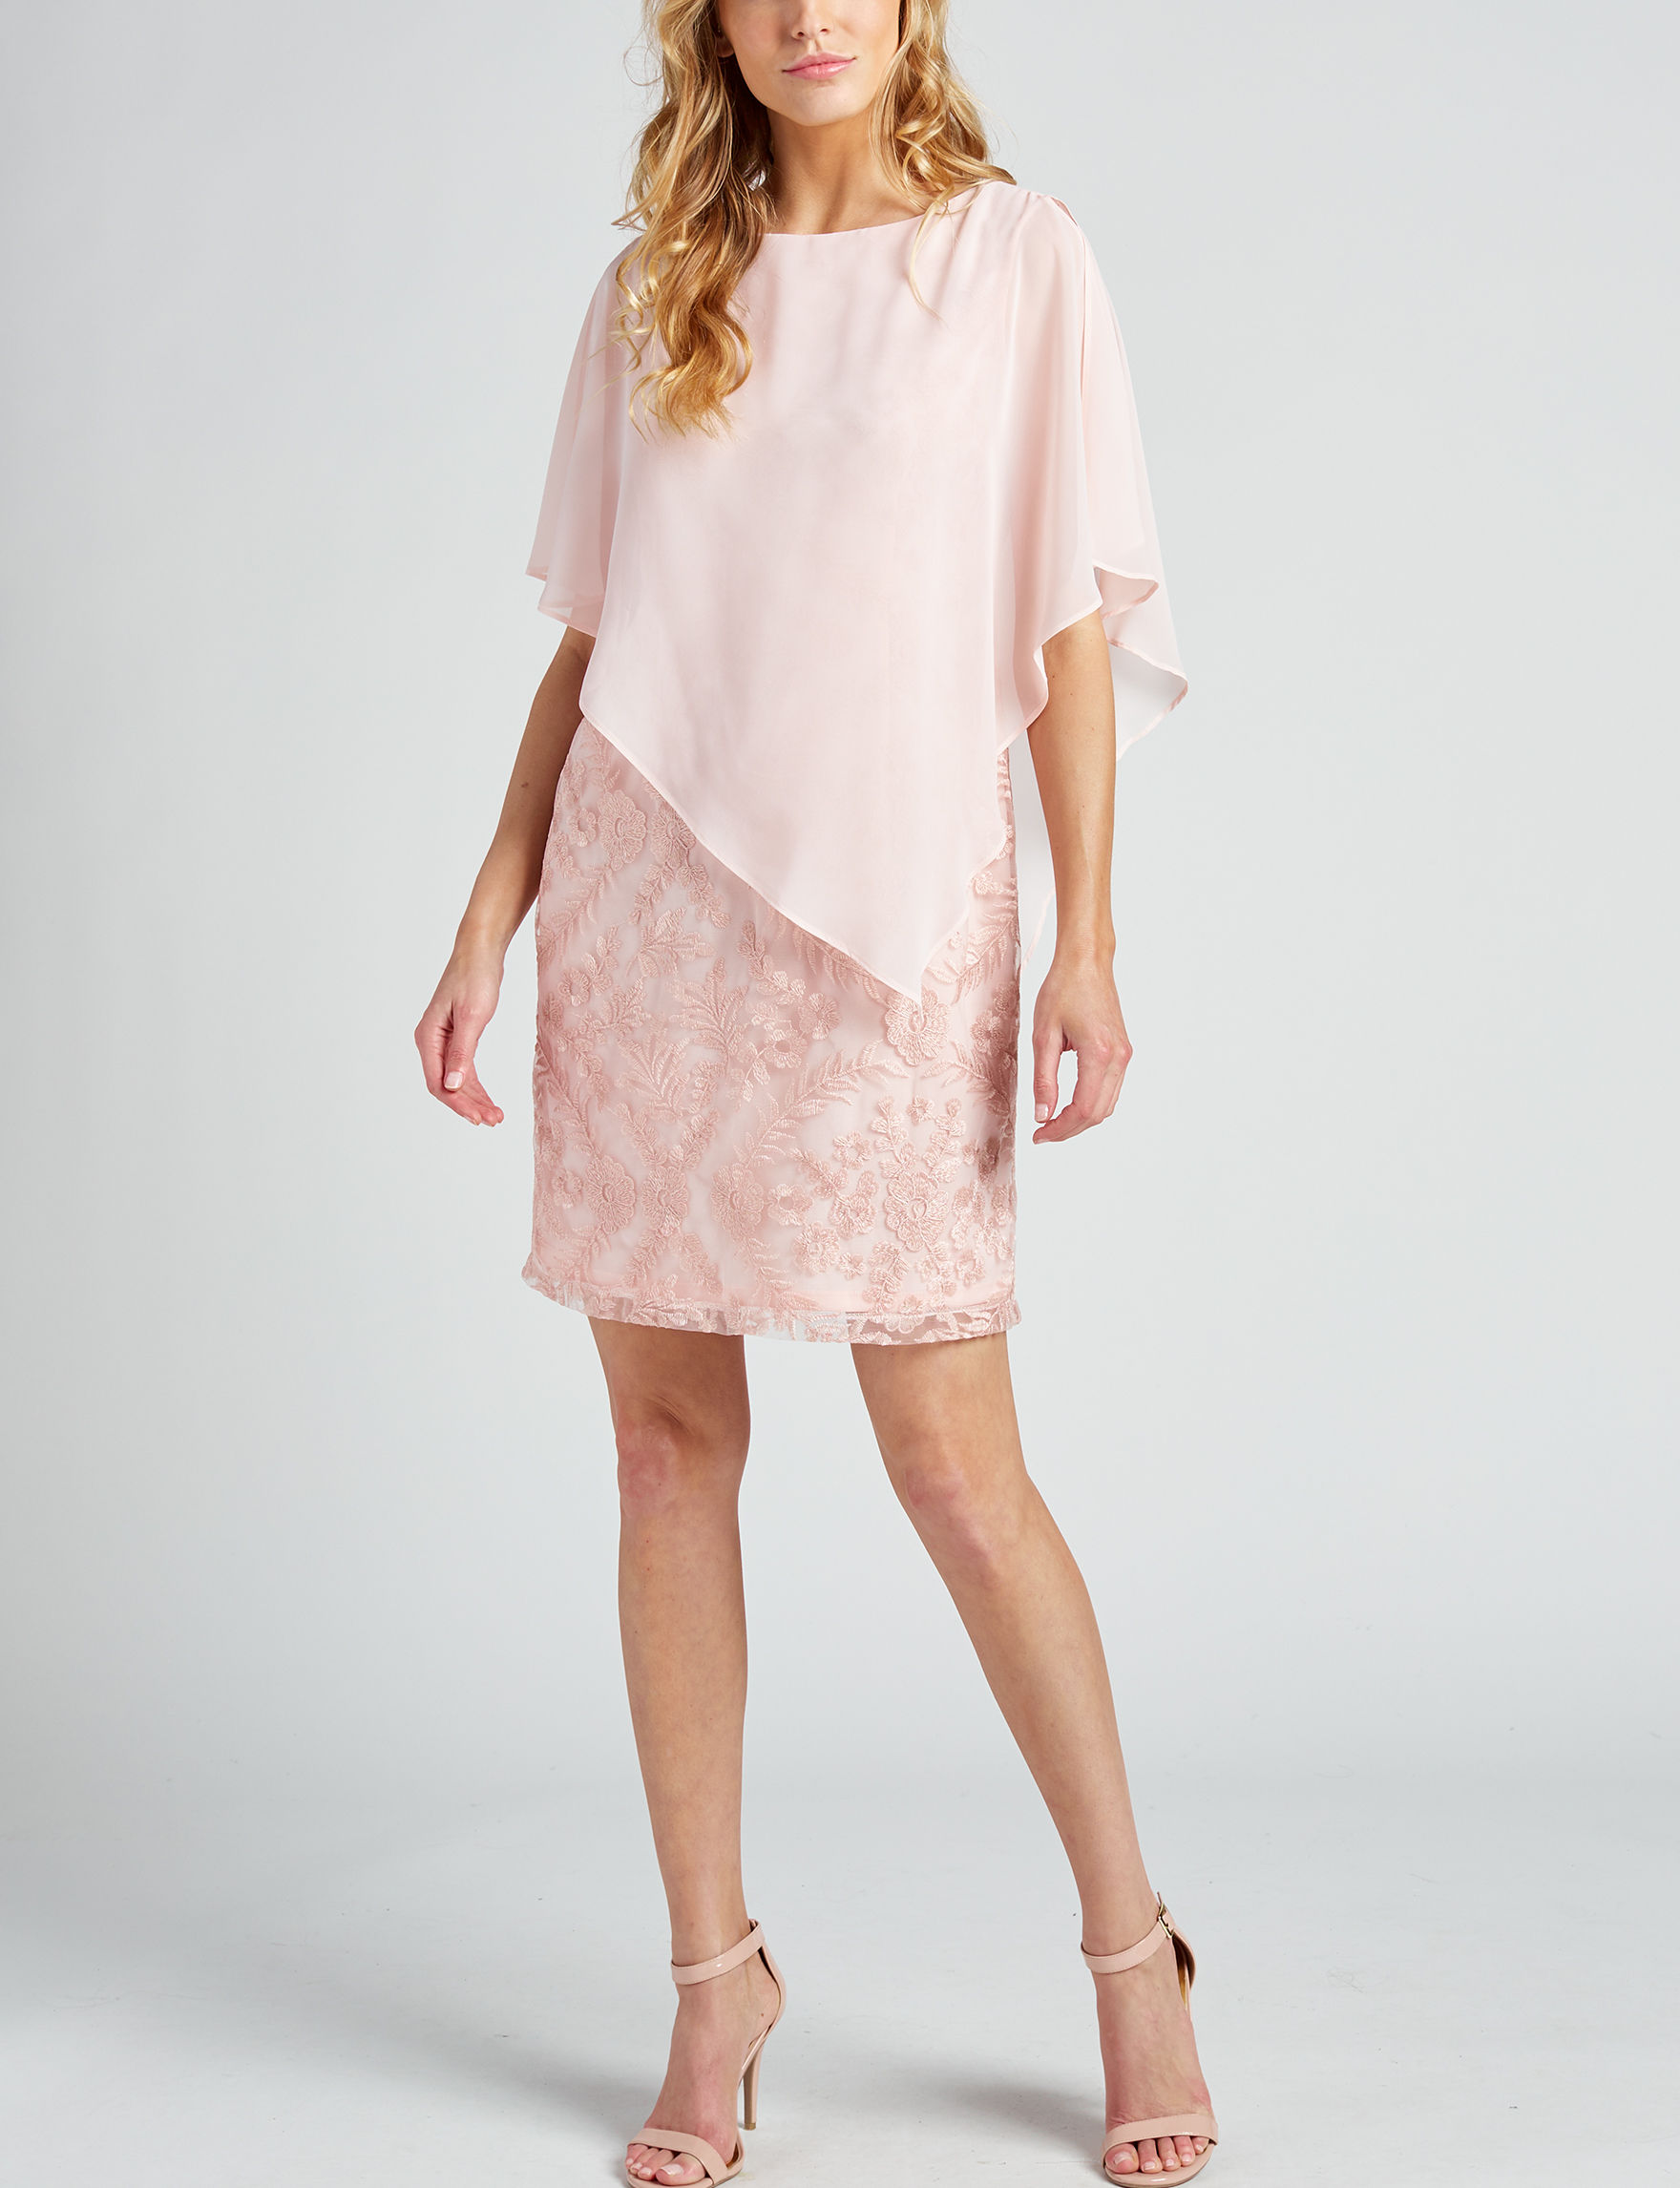 Sandra Darren Pink Cocktail & Party Evening & Formal Shift Dresses